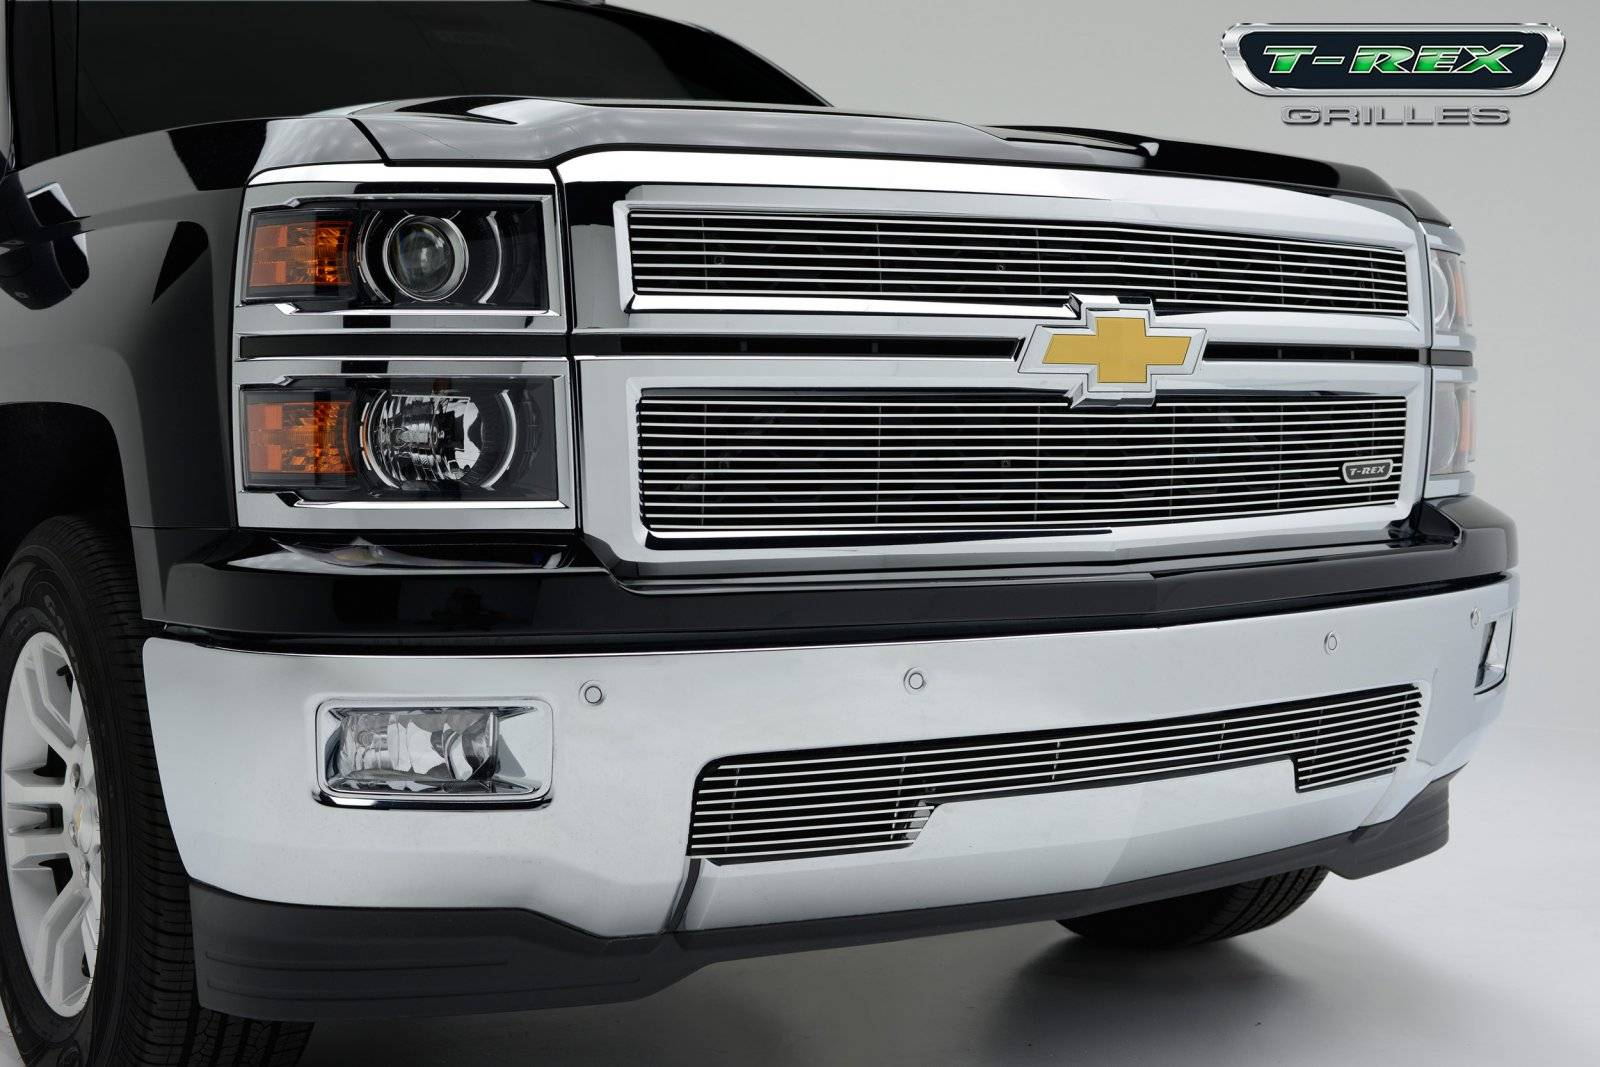 T-REX Grilles - Chevrolet Silverado 1500 - Billet Grille - Main Overlay - Bolt On - 2 Pc. - Polished - Pt # 21117